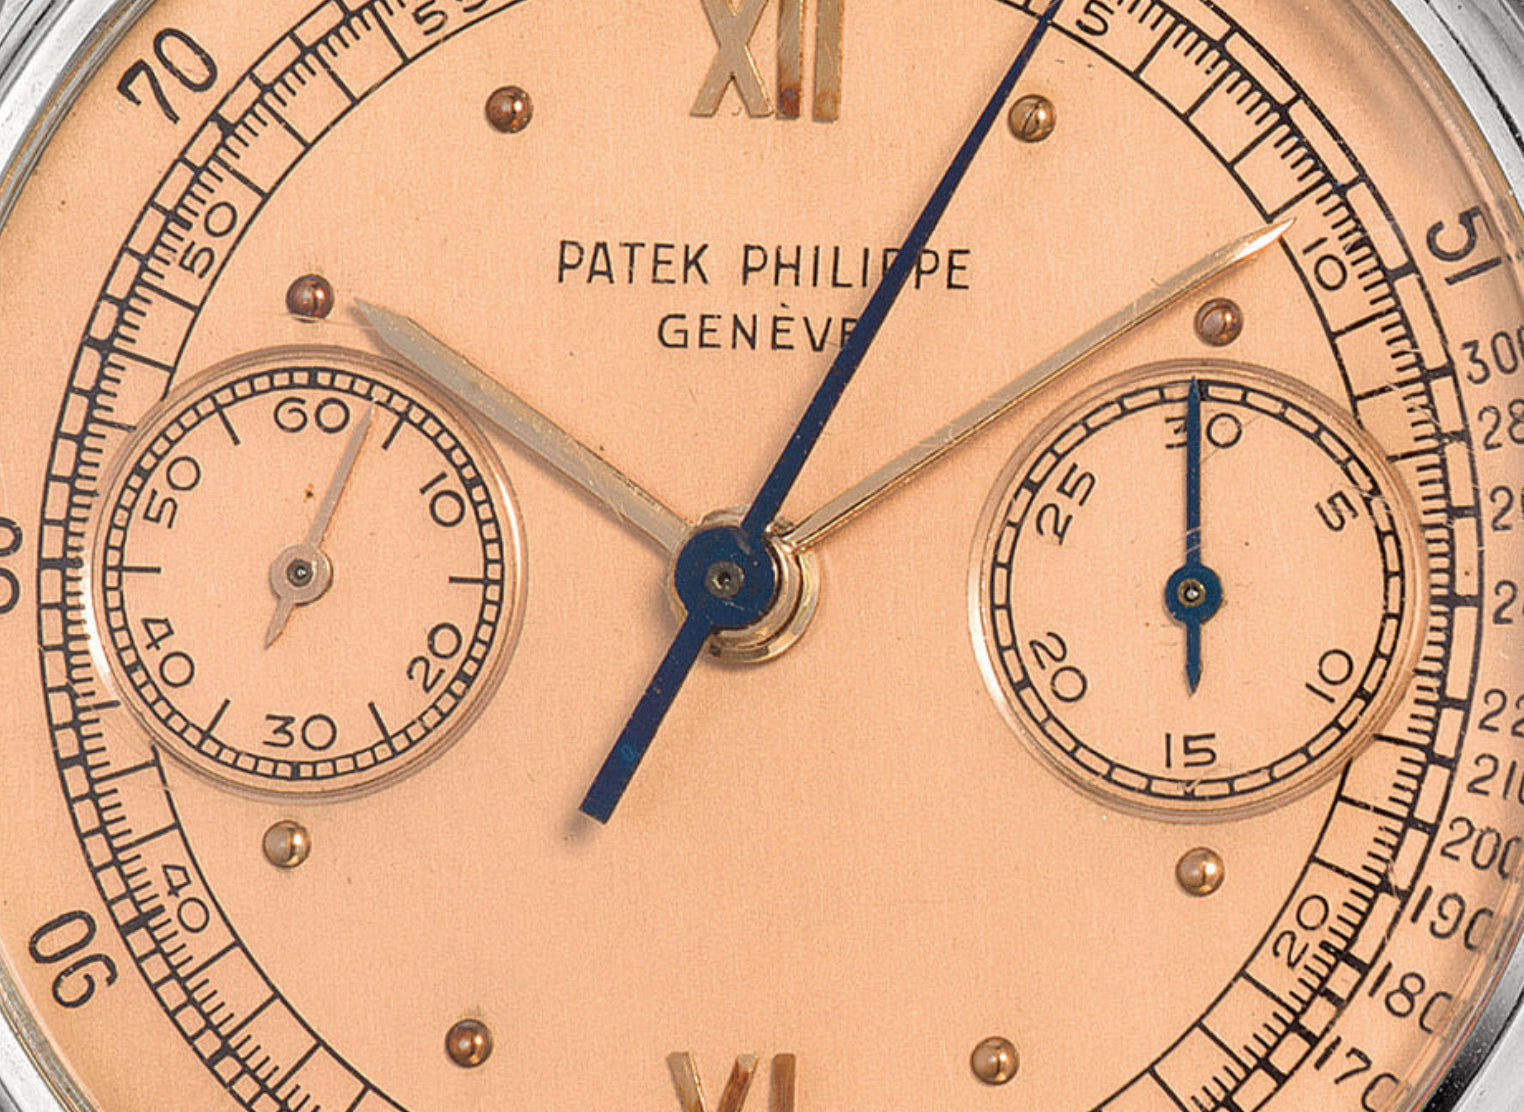 Patek Philippe 130 salmon dial chronograph close up for A Collected Man London